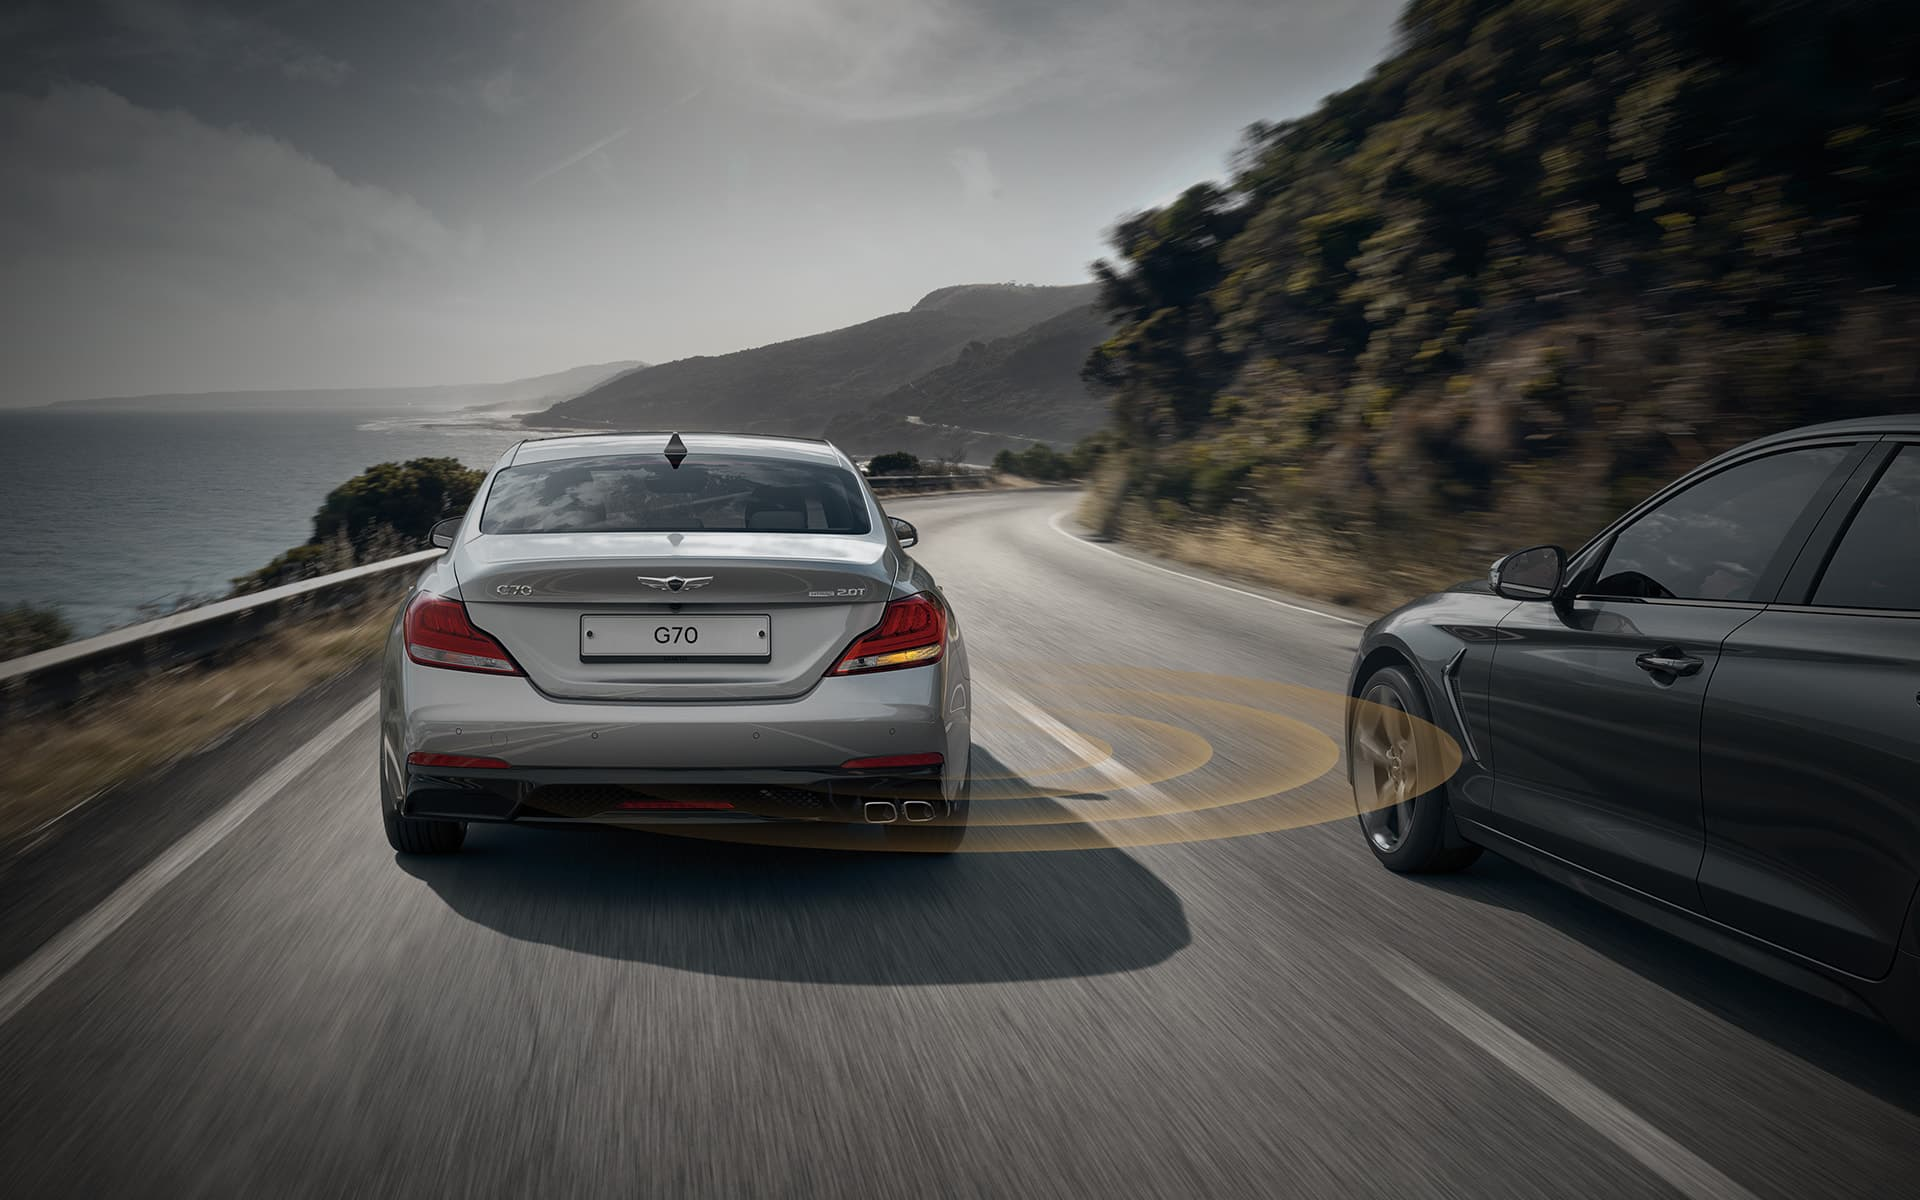 GENESIS G70 Safety Features - 후측방 충돌 경고